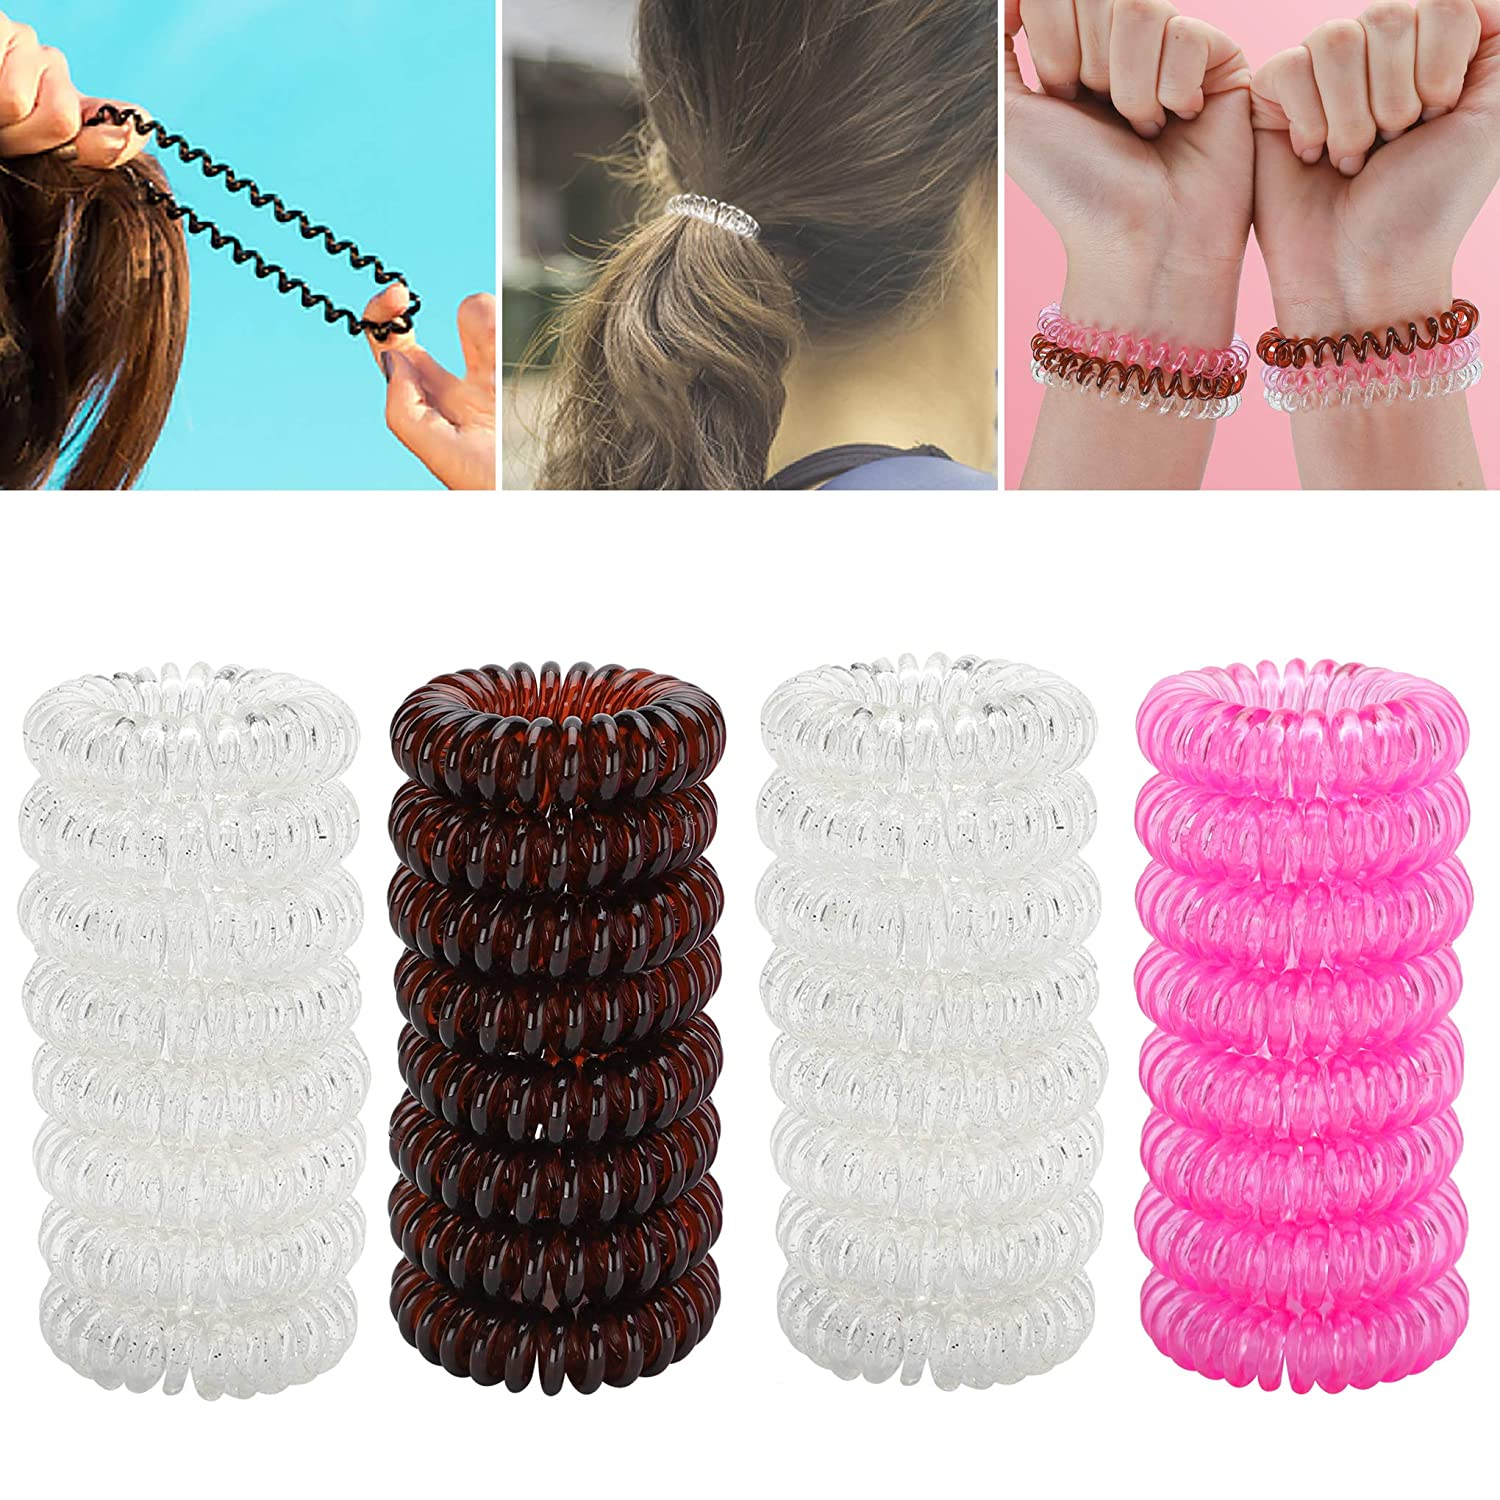 Grobro7 32 Pack Bracelet Hair Ring Elastics Ties, Clear Suitable Invisible Ponytail Holder Spiral Coil No Traceless Rubber Hair Bands, Waterproof Phone Cord Hair Rings with 3 Colors